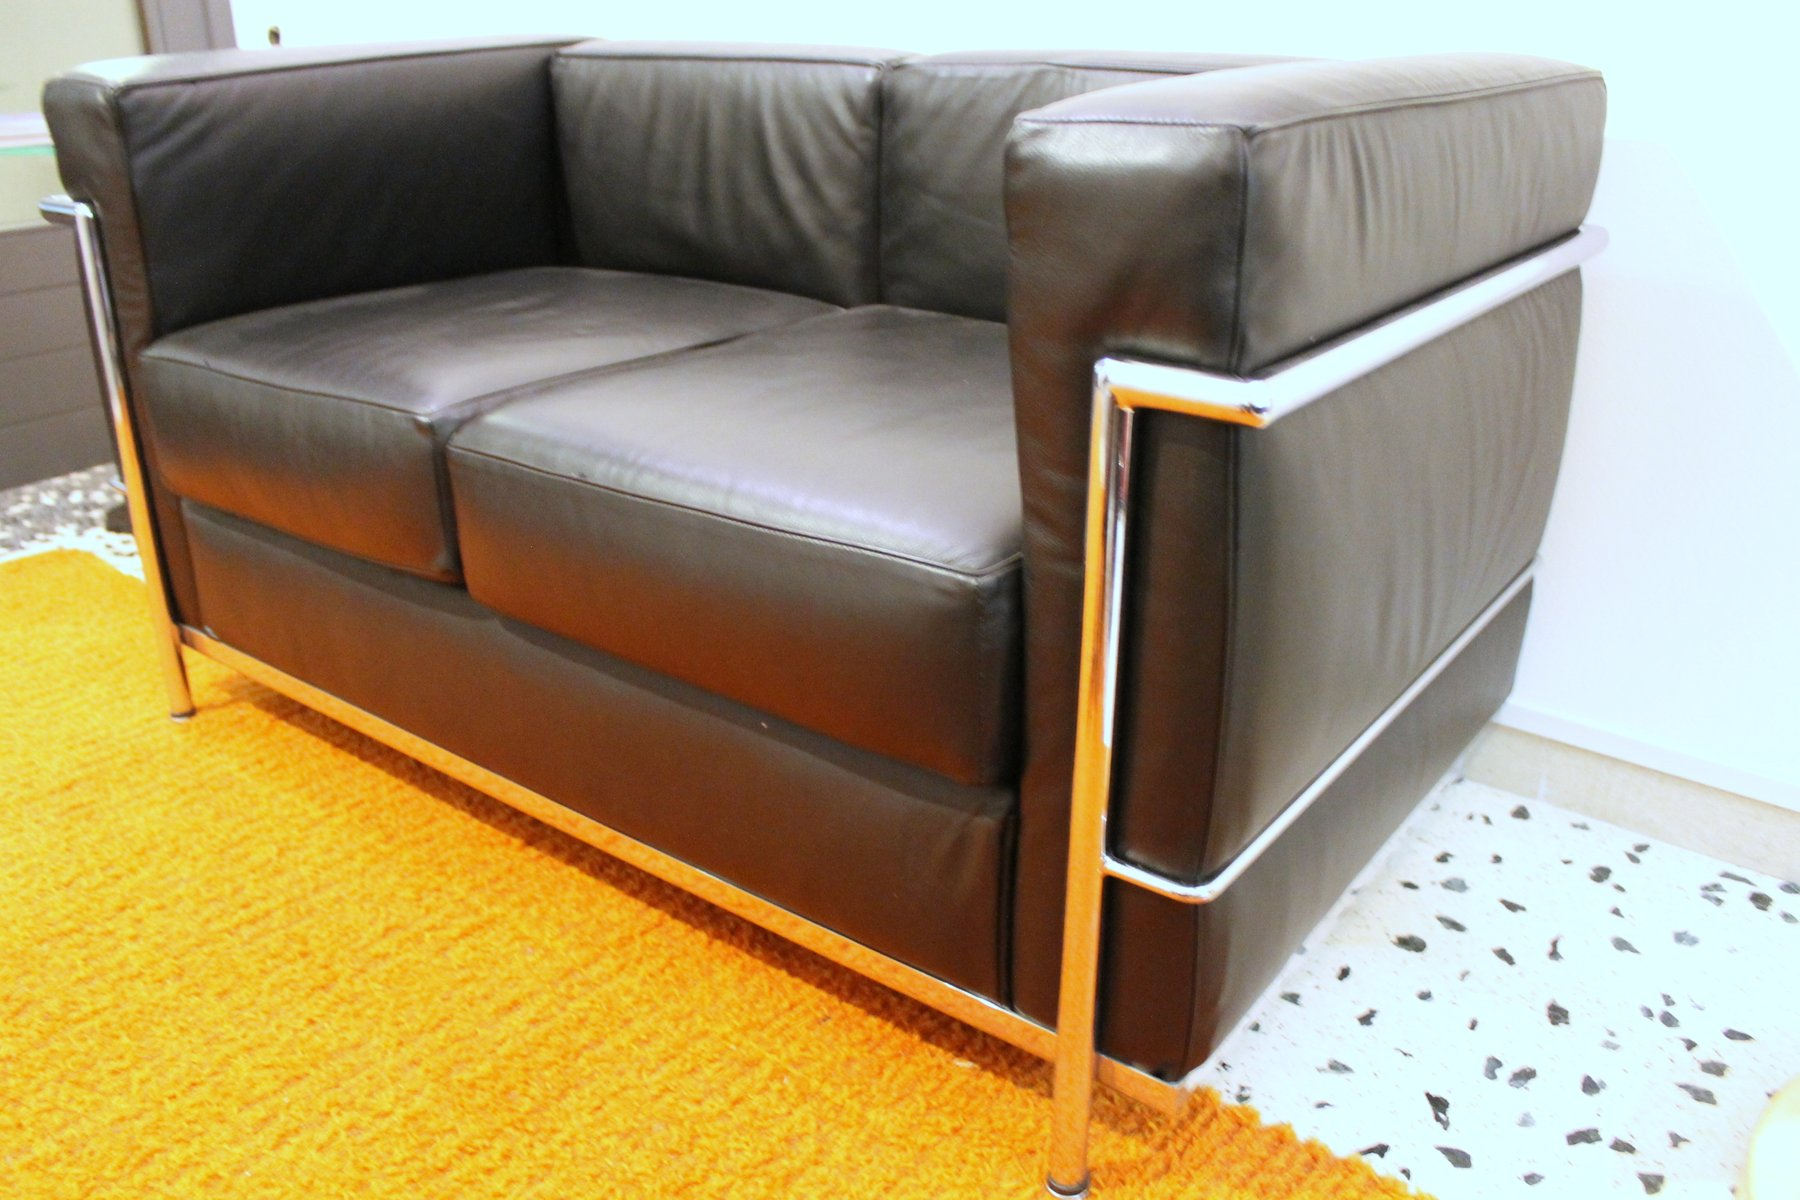 lc2 sofa von le corbusier f r alivar 1989 bei pamono kaufen. Black Bedroom Furniture Sets. Home Design Ideas